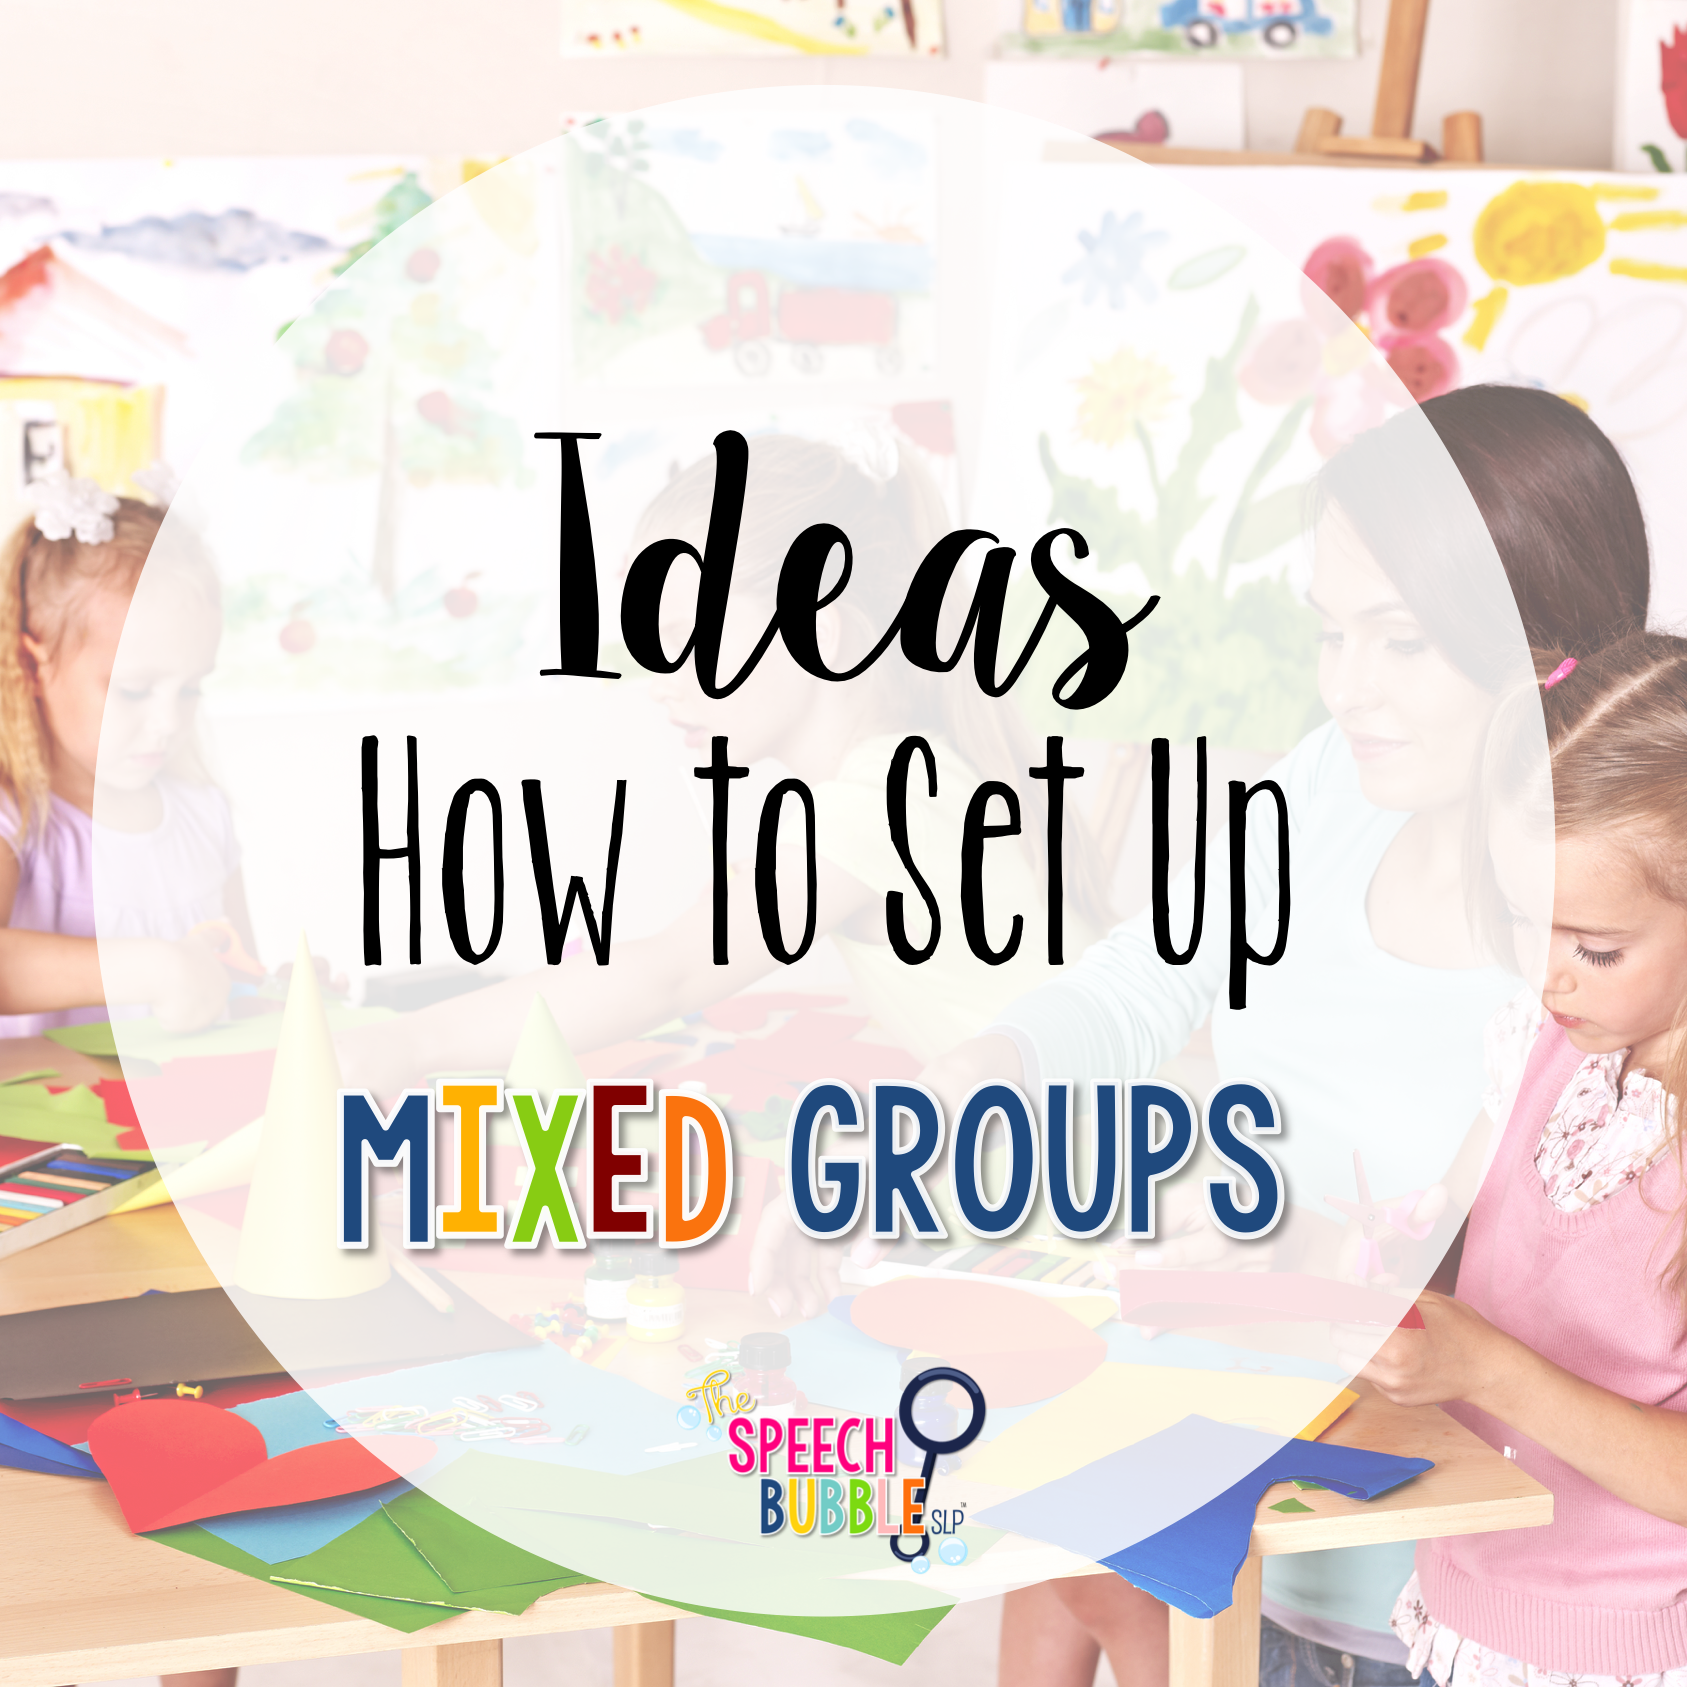 Ideas How to Set Up Mixed Groups